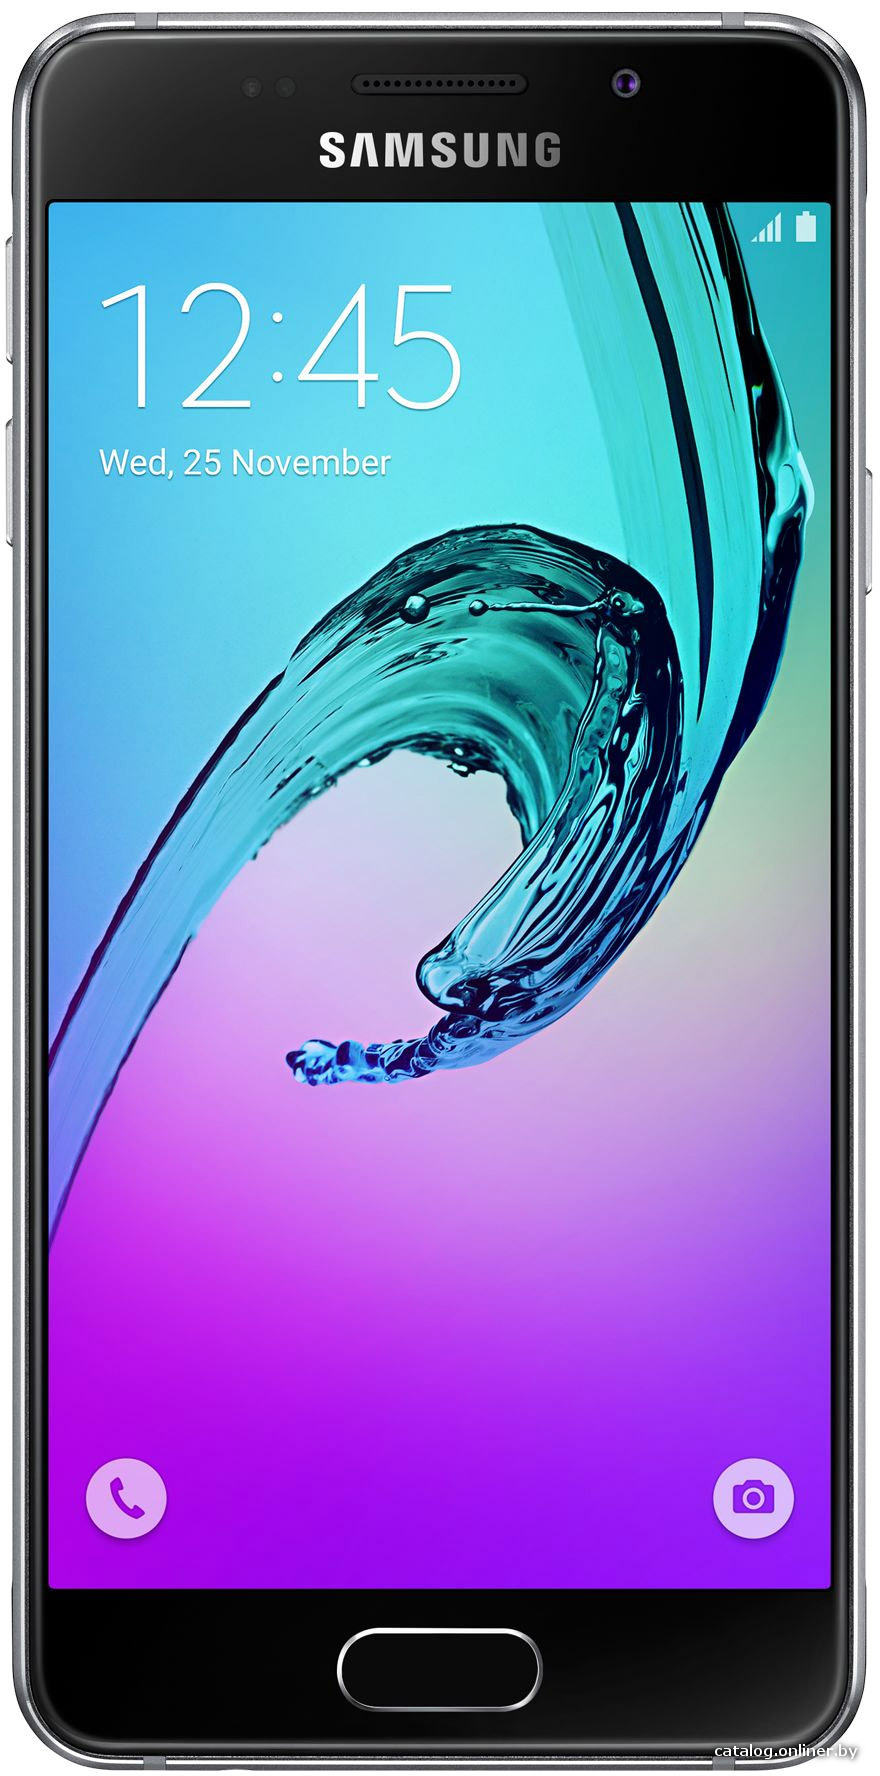 "Смартфон Samsung Galaxy A3 (2016) SM-A310F-DS Black (1.5GHz,1.5GbRAM,4.7""1280x720,4G+BT+WiFi+GPS,16Gb+microSD,13Mp,Andr)"